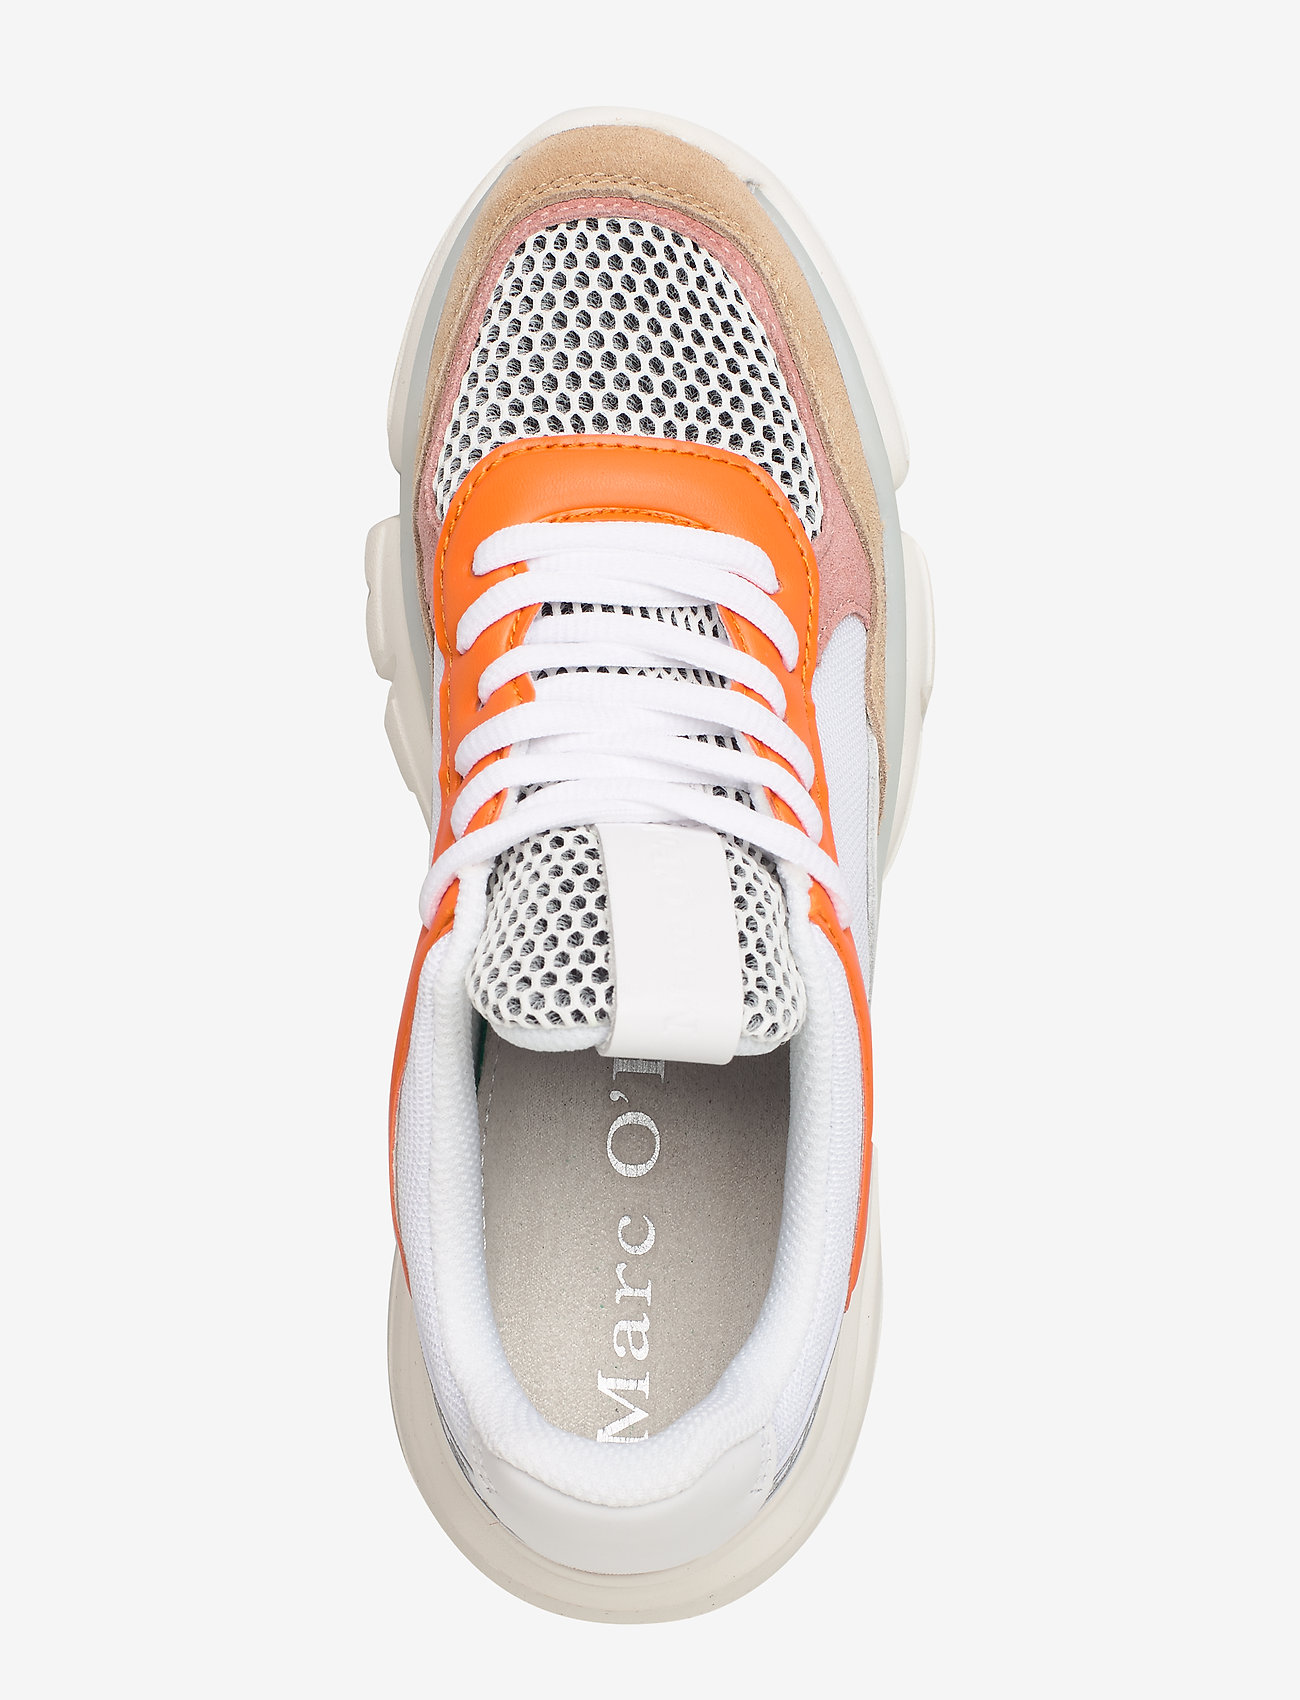 Julia 1 (Orange Combi) - Marc O'Polo Footwear